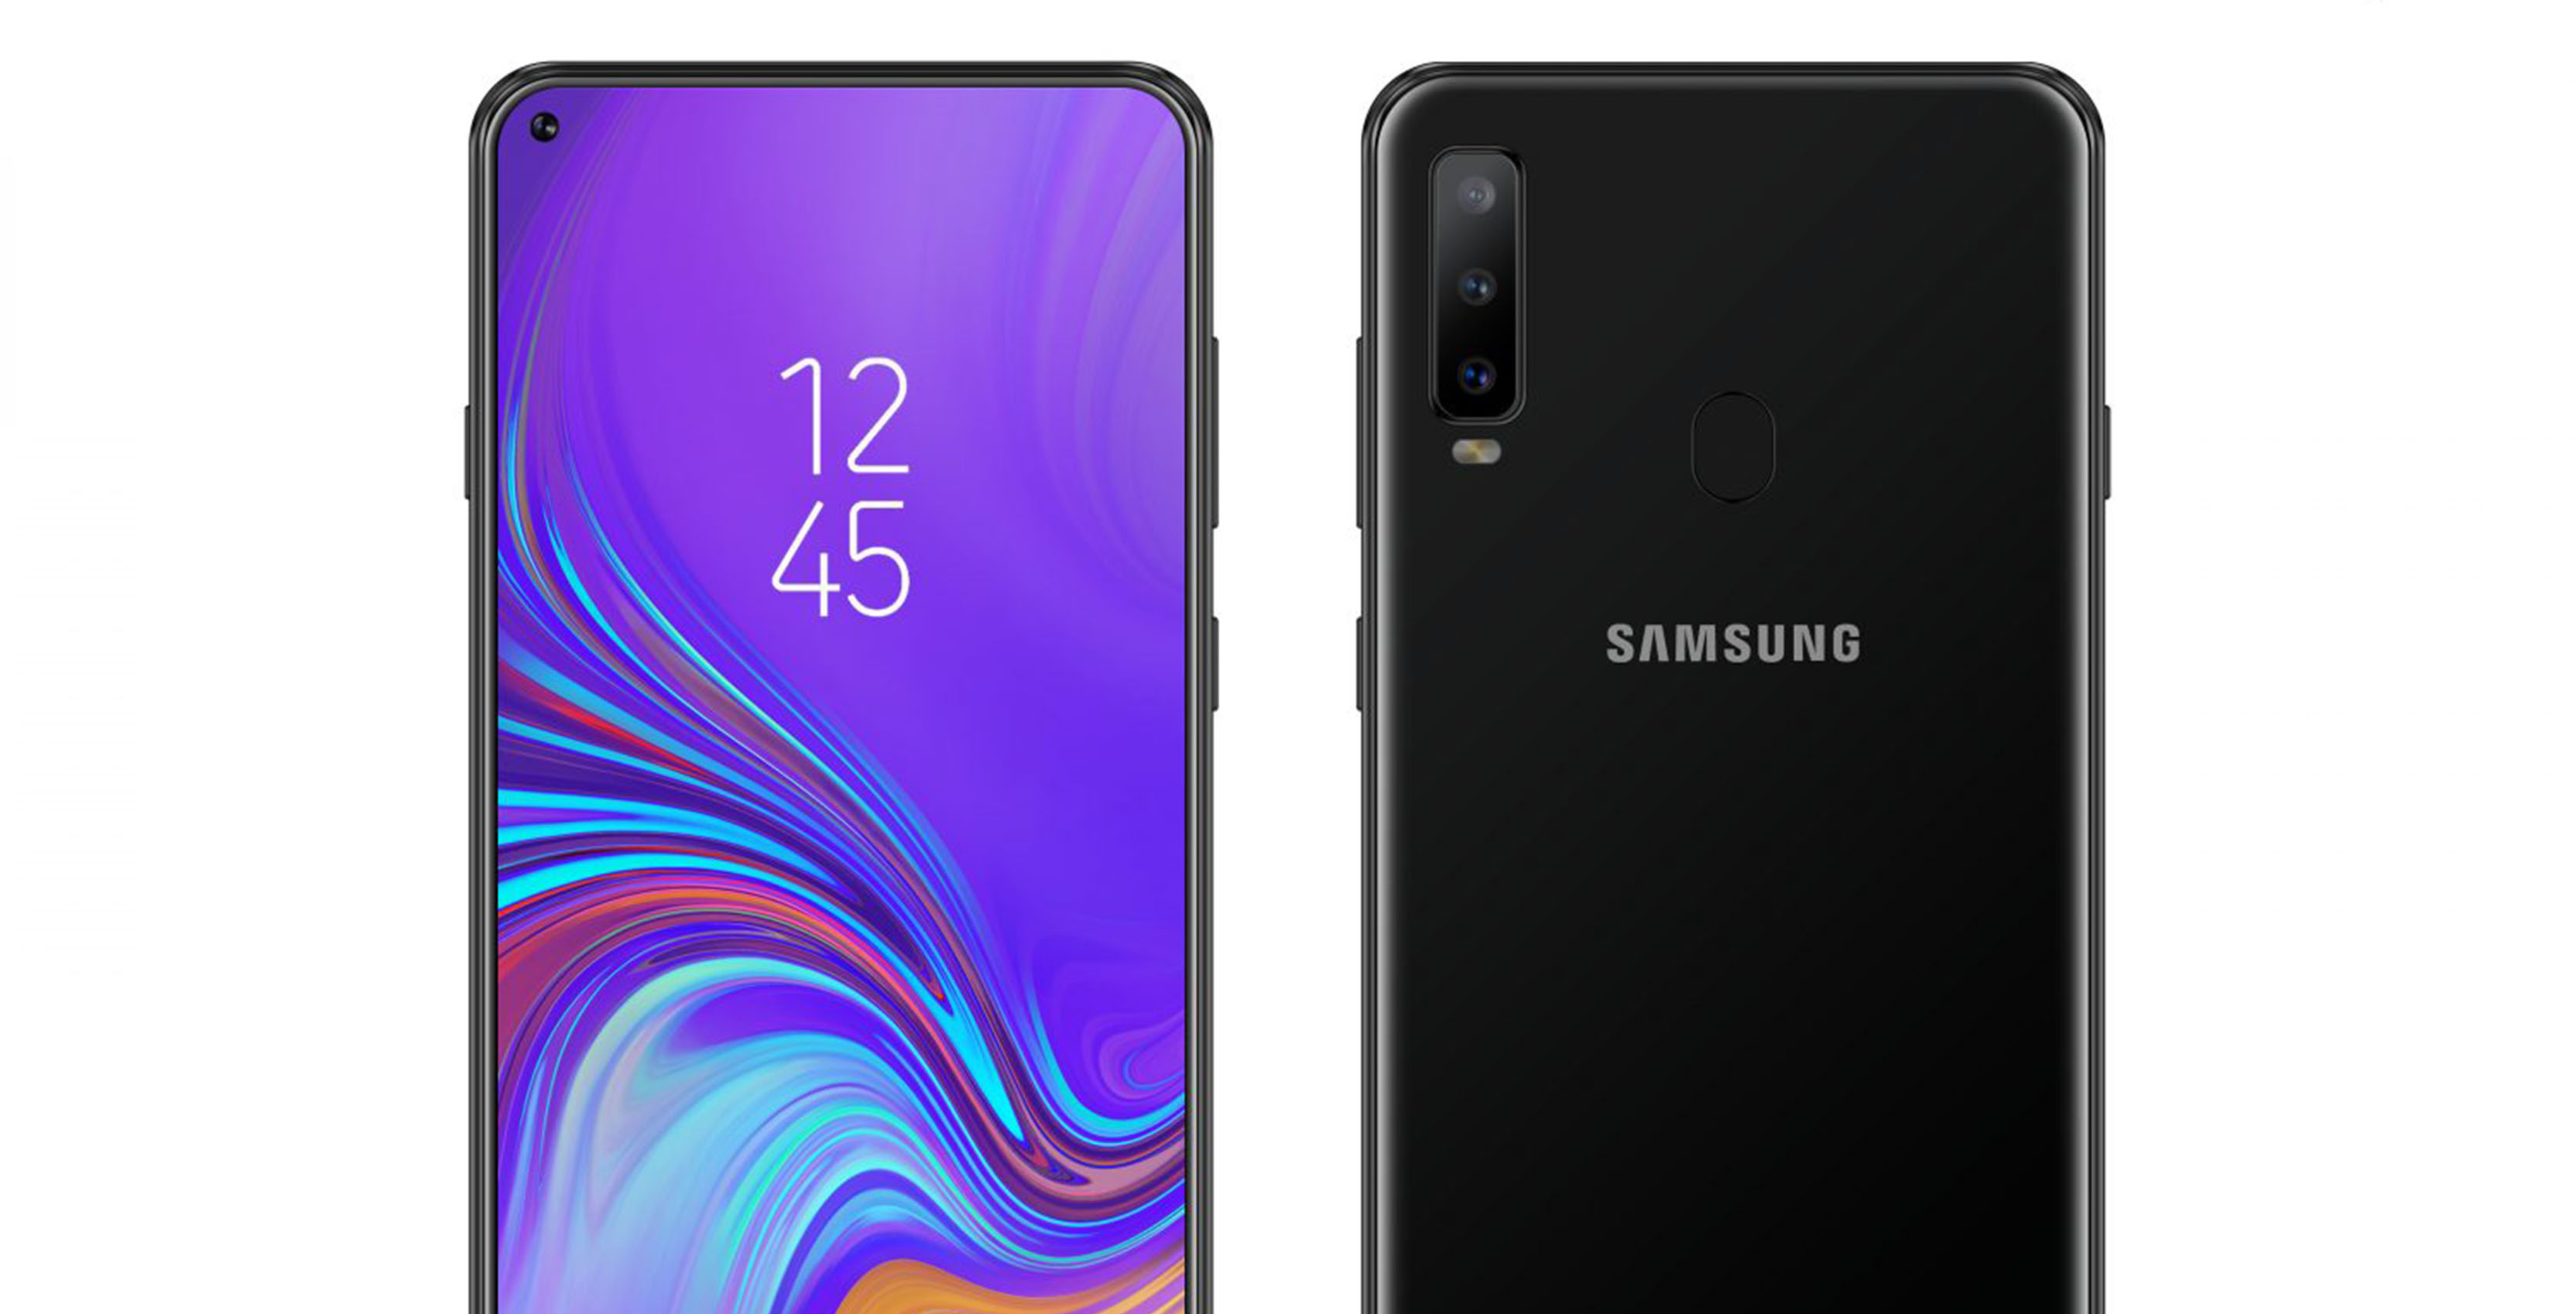 Samsung to bring back three-year-old display tech with 'Galaxy S10'